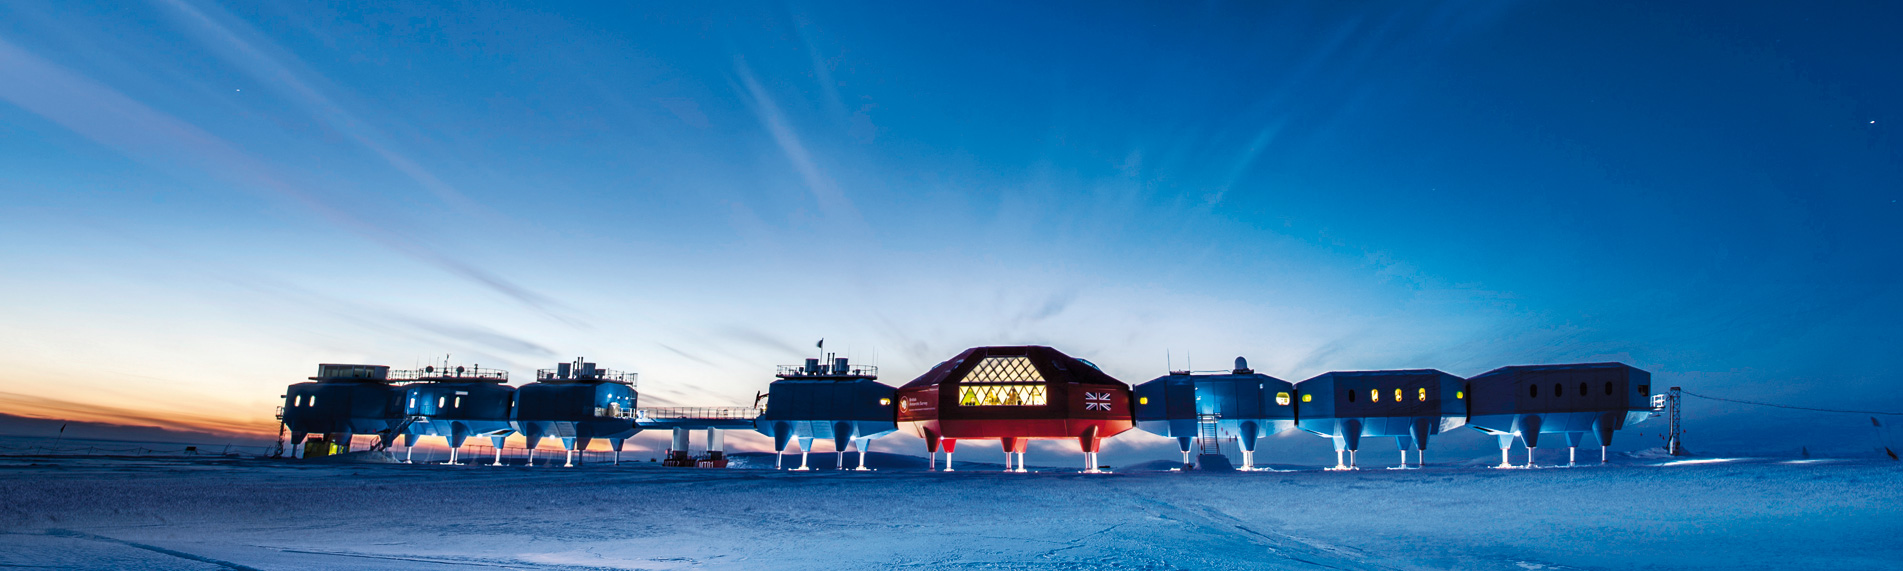 Condair humidifies Halley VI Station in Antarctica